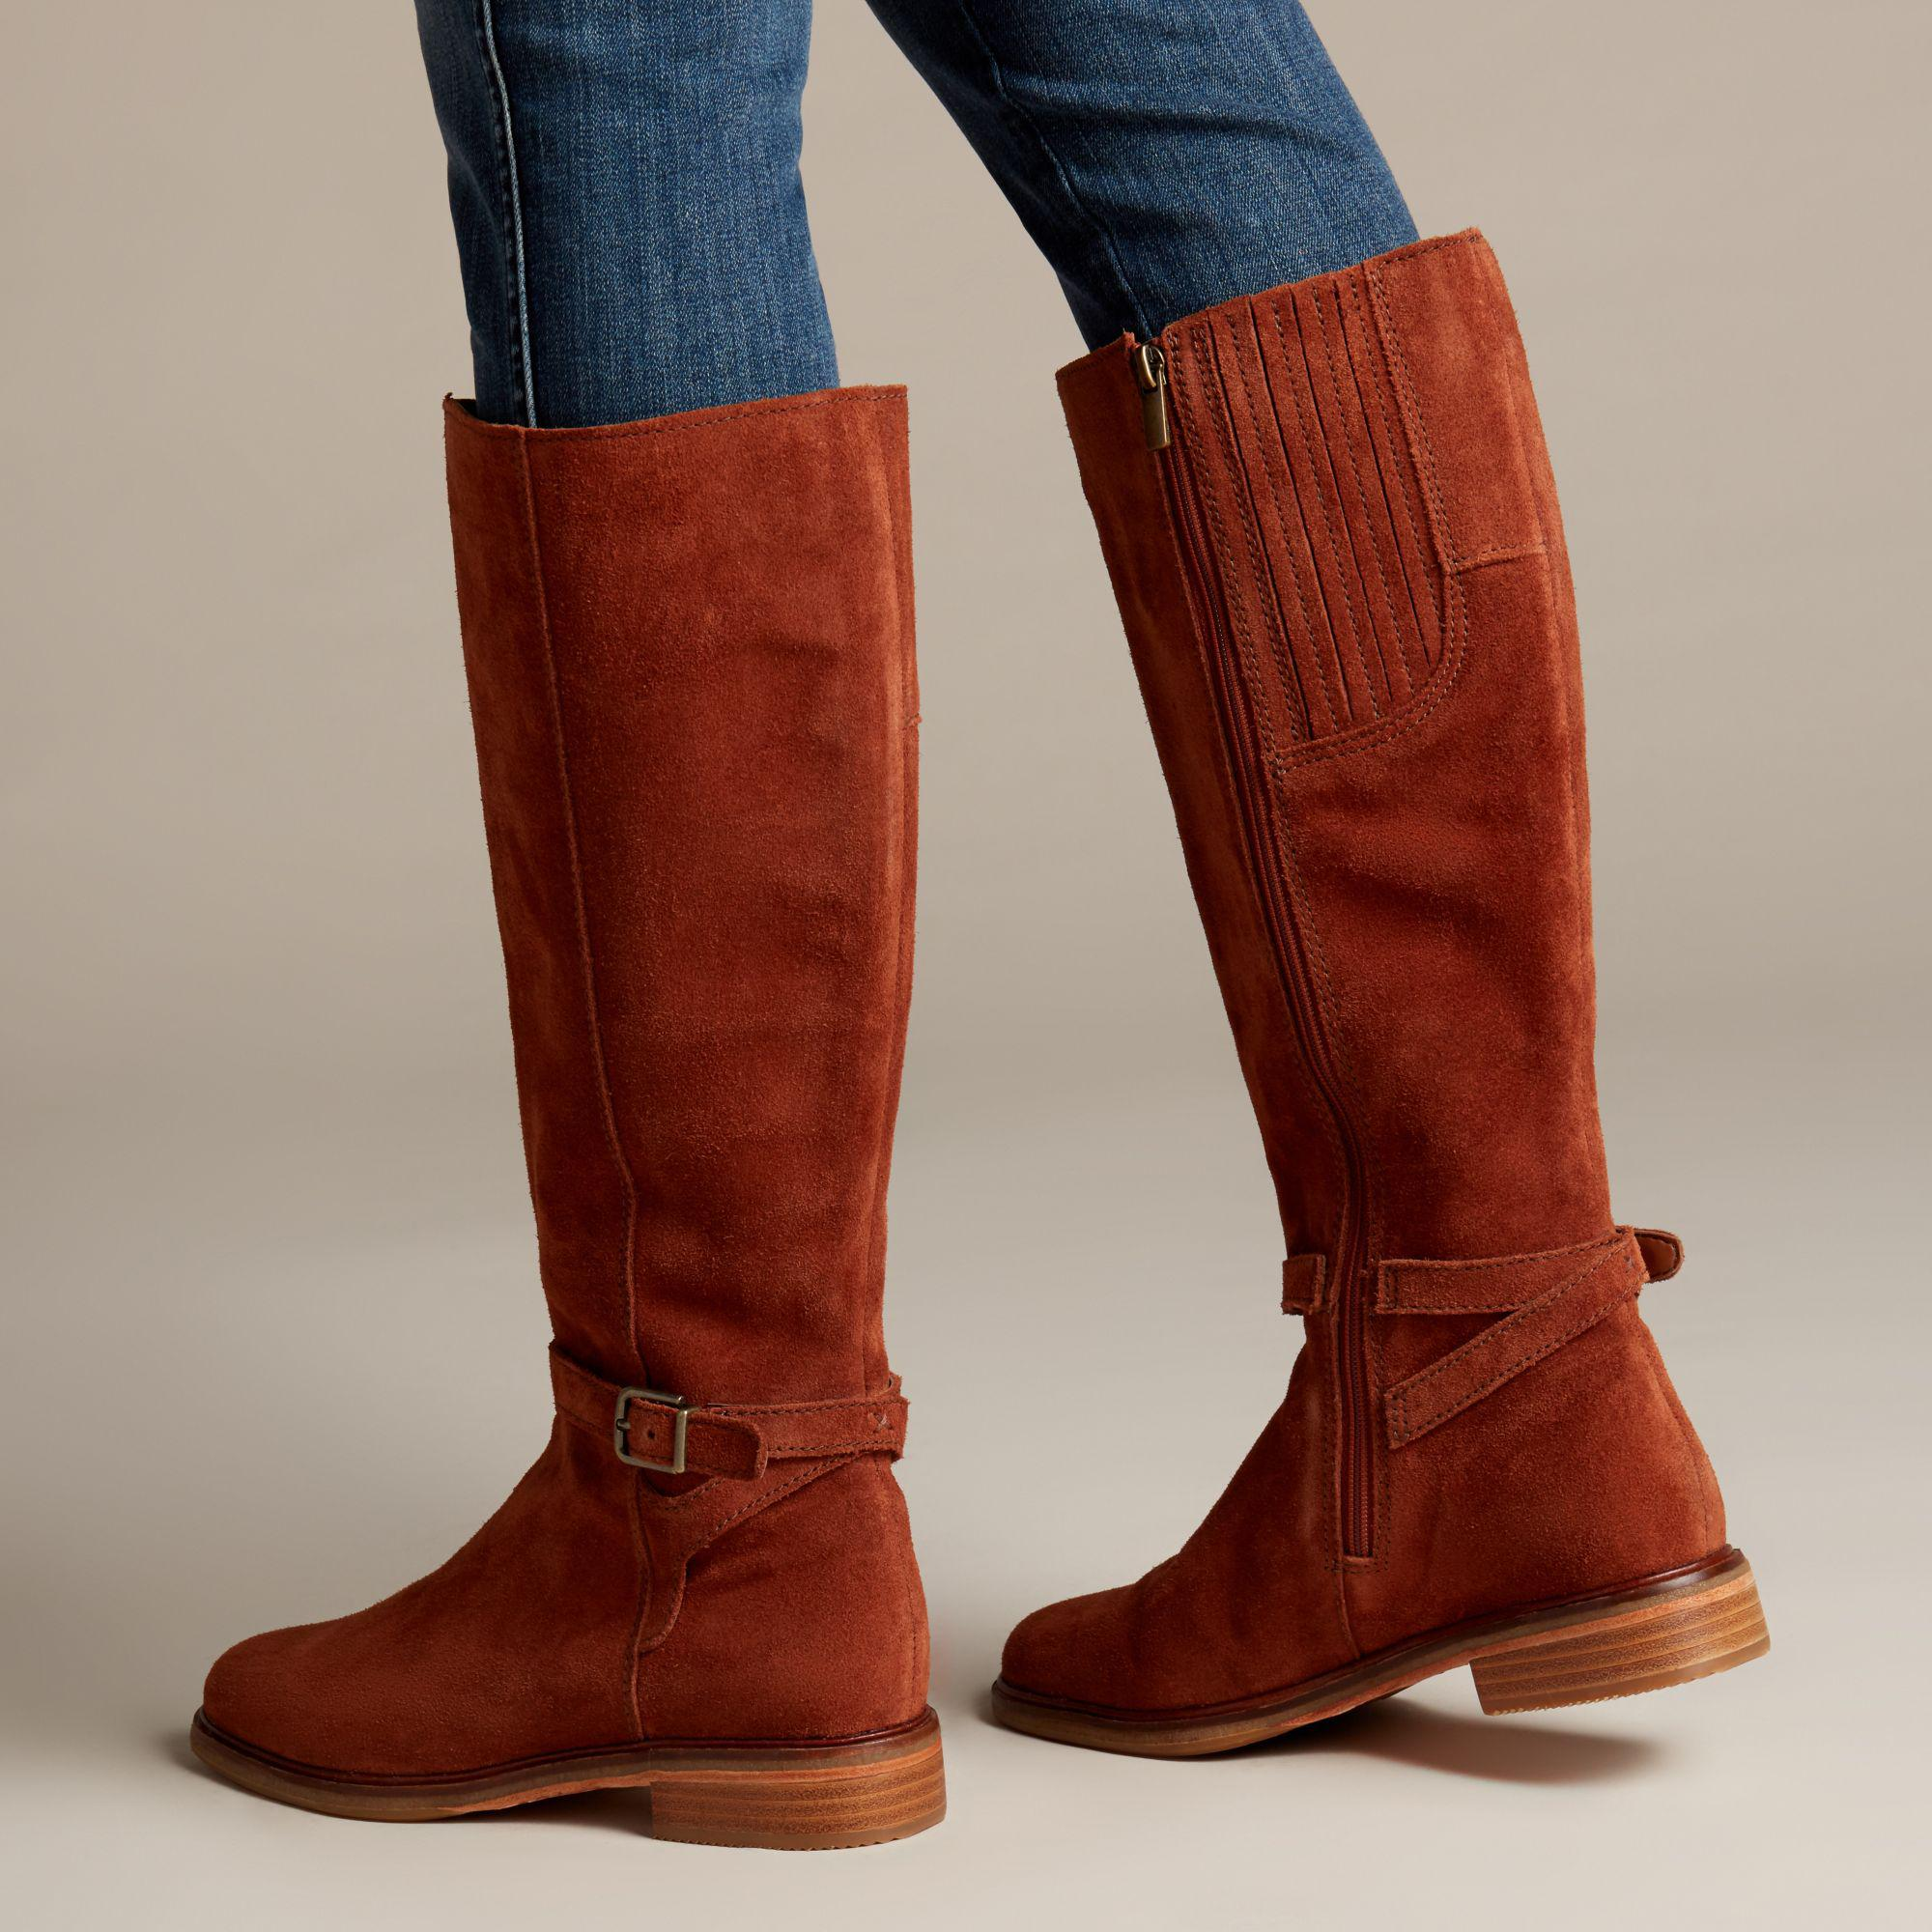 CLARKS Womens Clarkdale Clad Boot